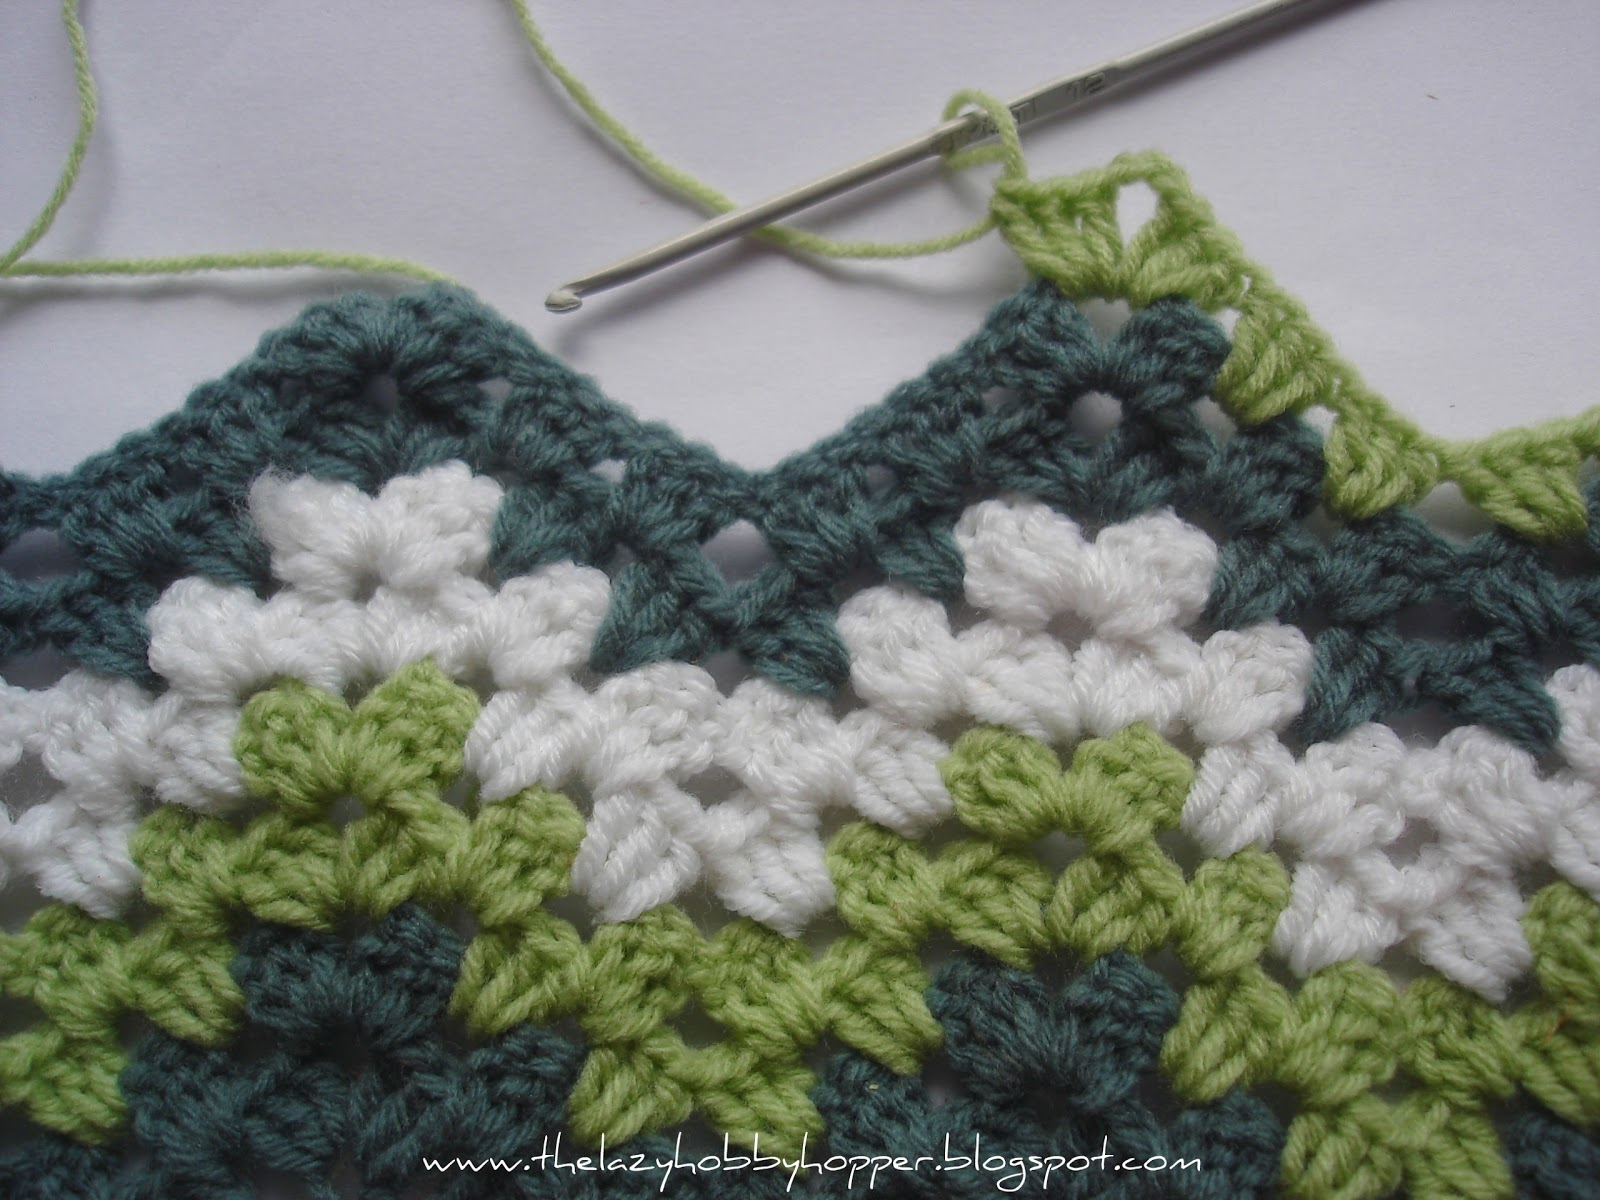 To Crochet : The Lazy Hobbyhopper: How to crochet granny ripple